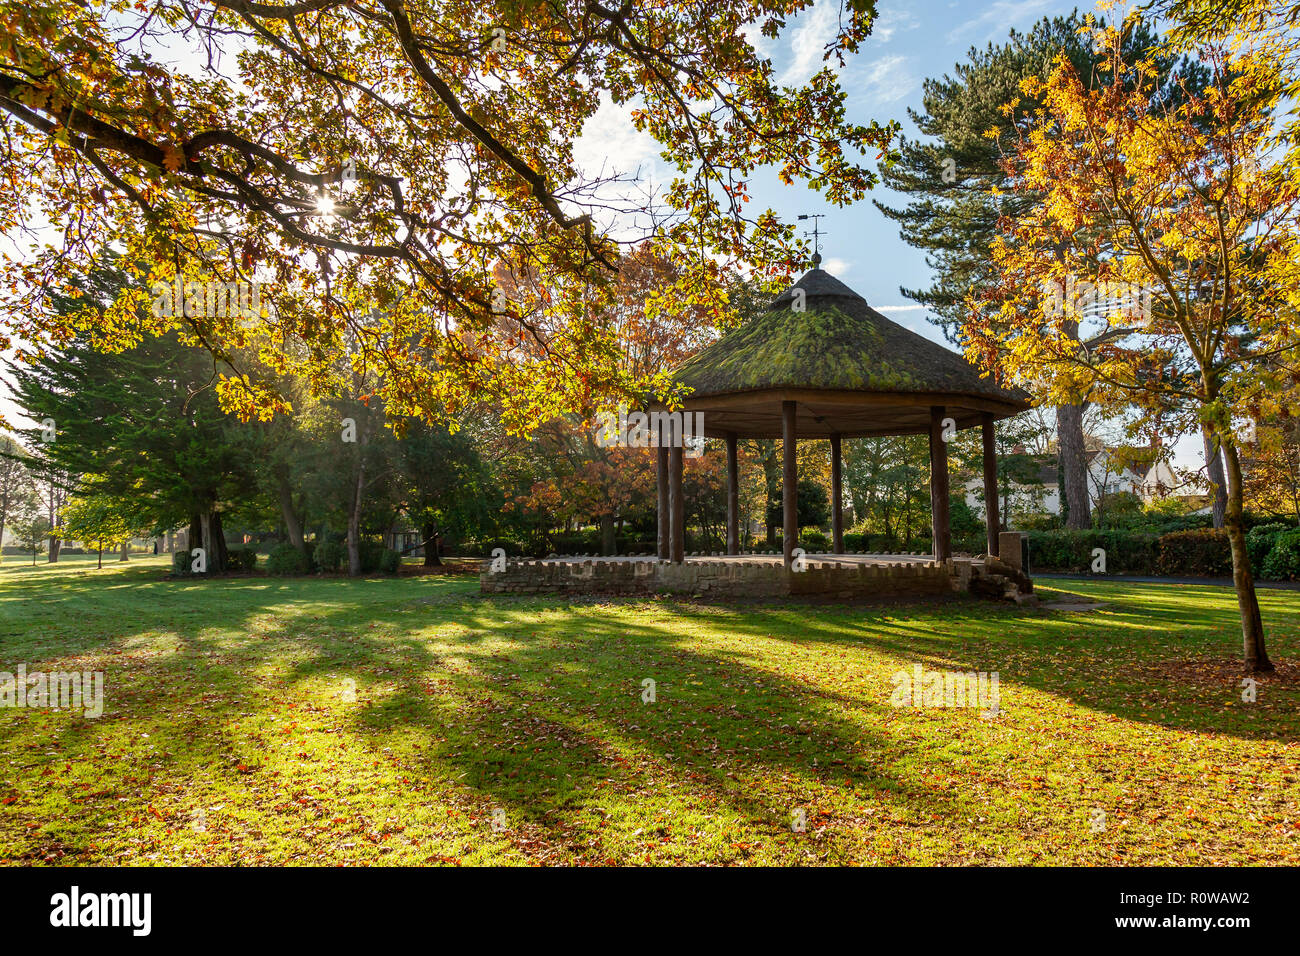 Bandstand at Victoria Park in Frome, Somerset, Uk - Stock Image